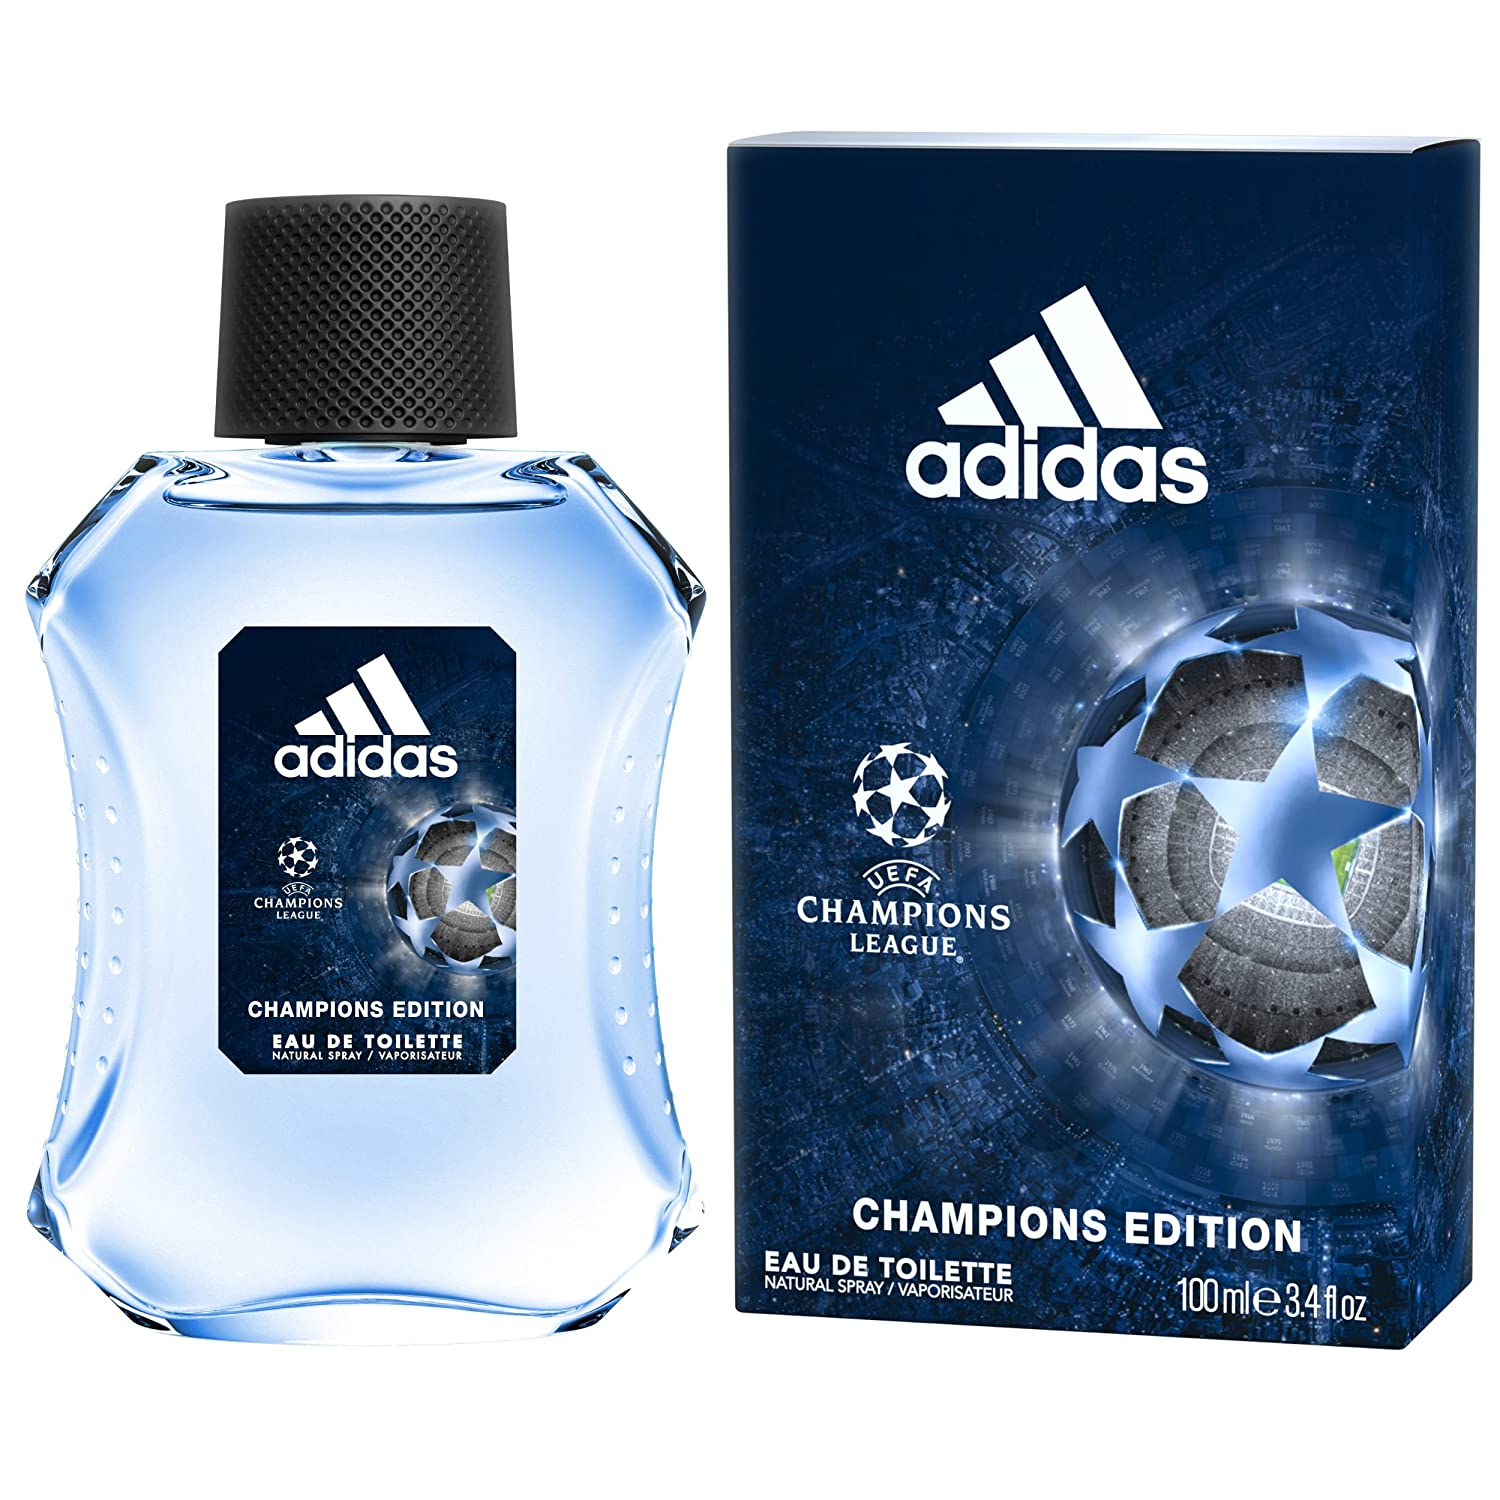 Adidas Champions Edition for men